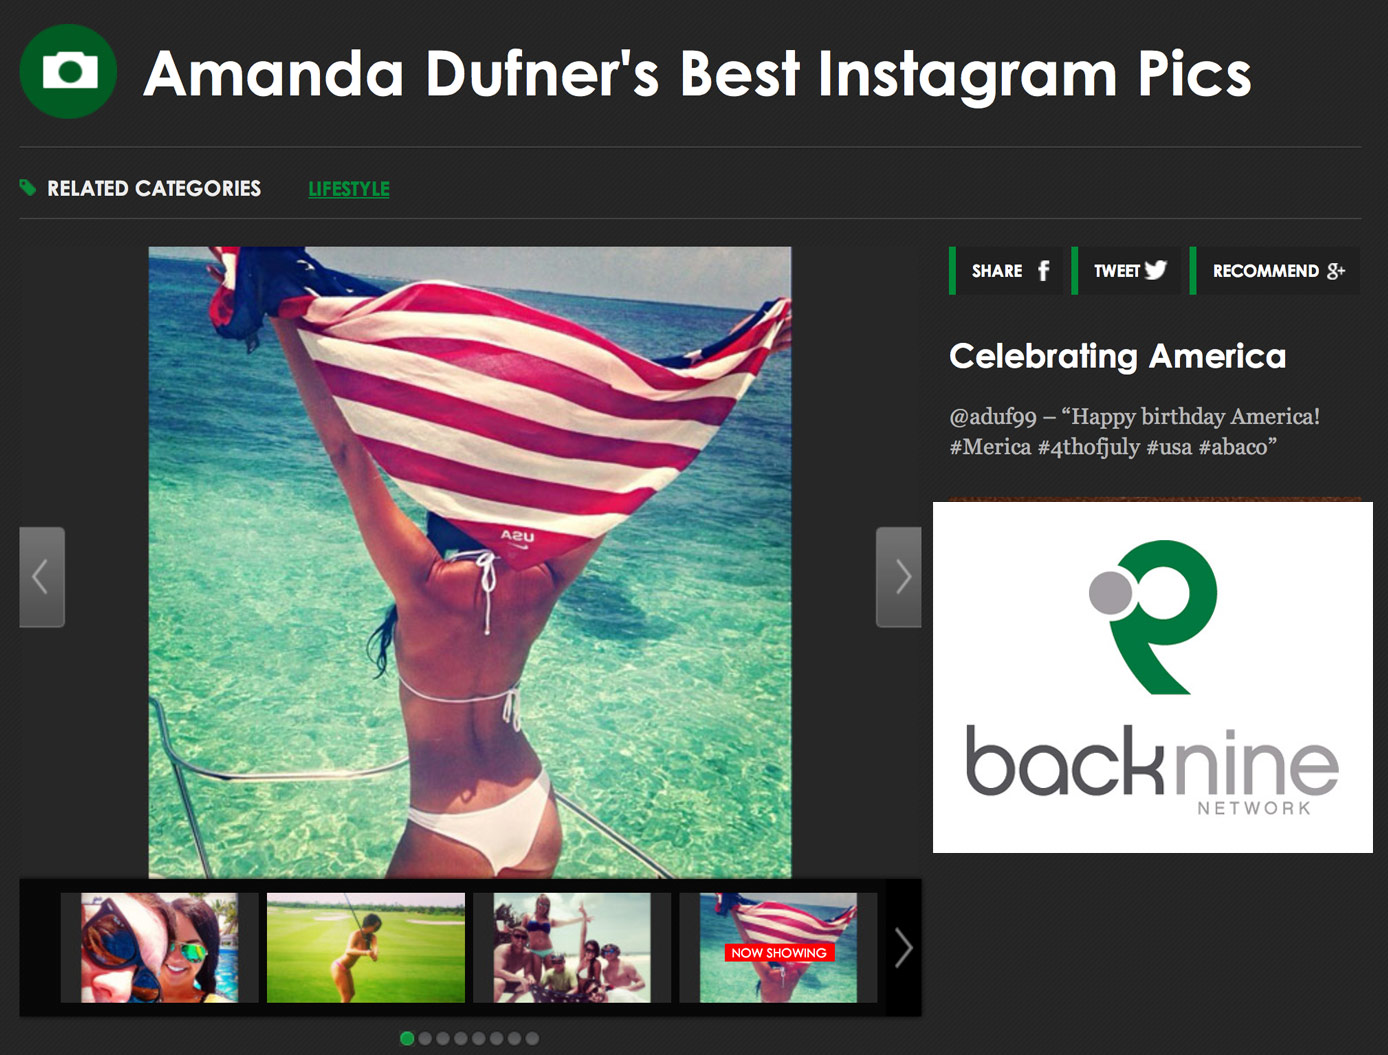 amanda-dufner-photo-gallery-link